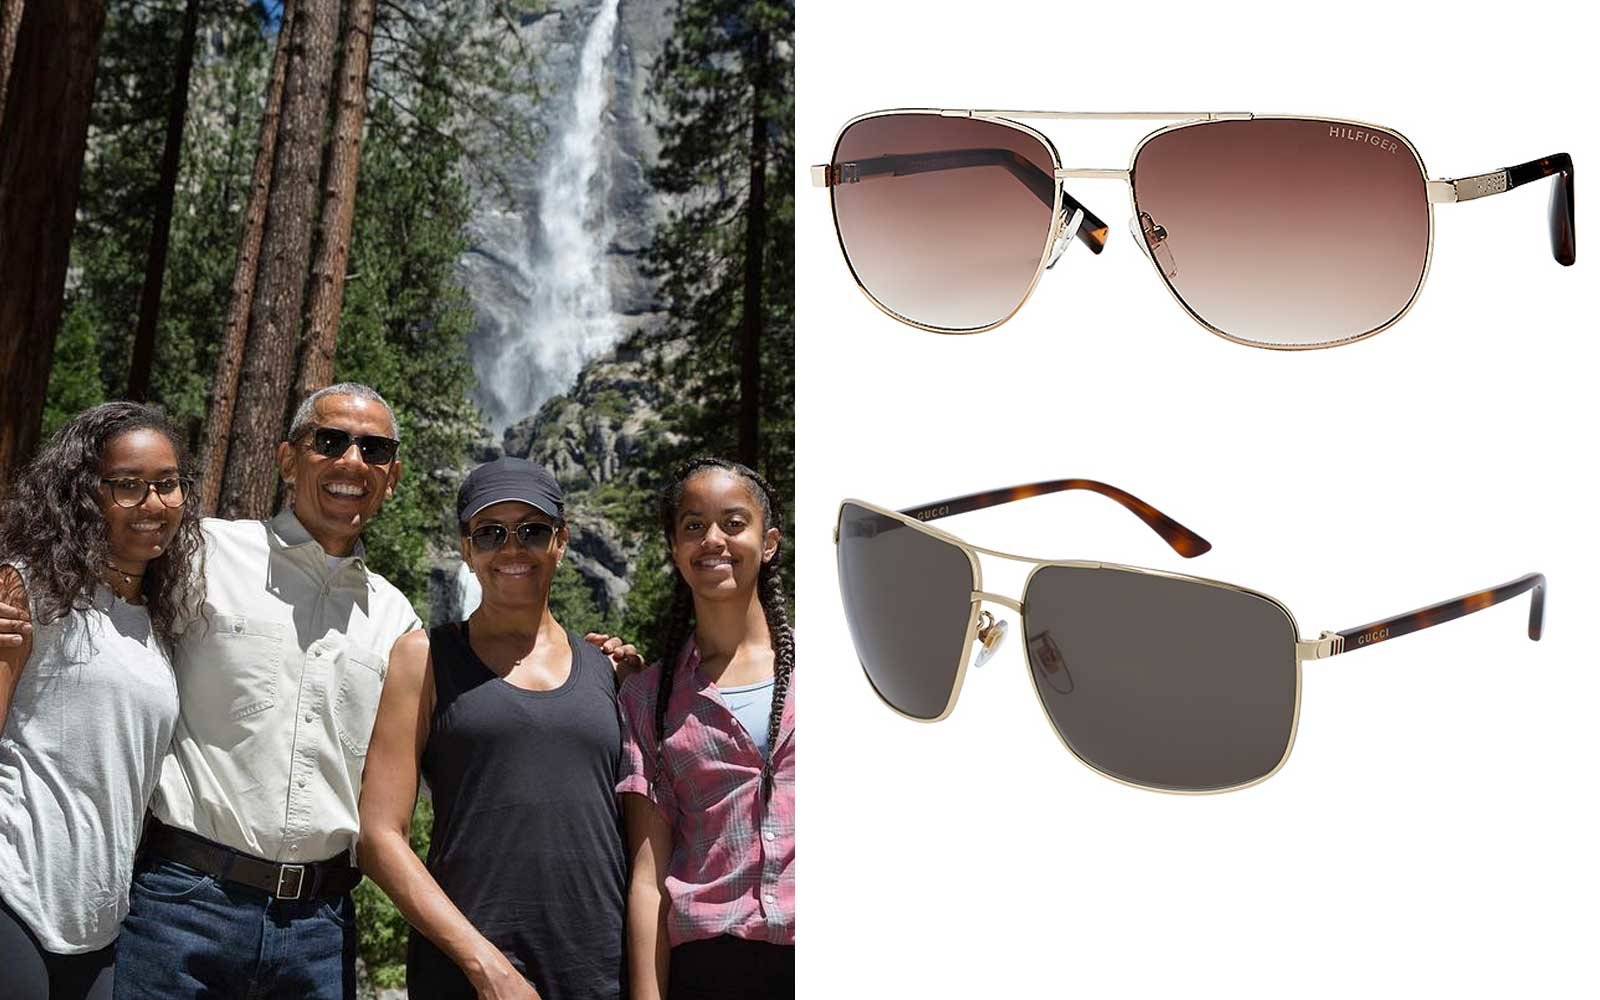 449d8ad267d The Best Sunglasses According to Celebrities